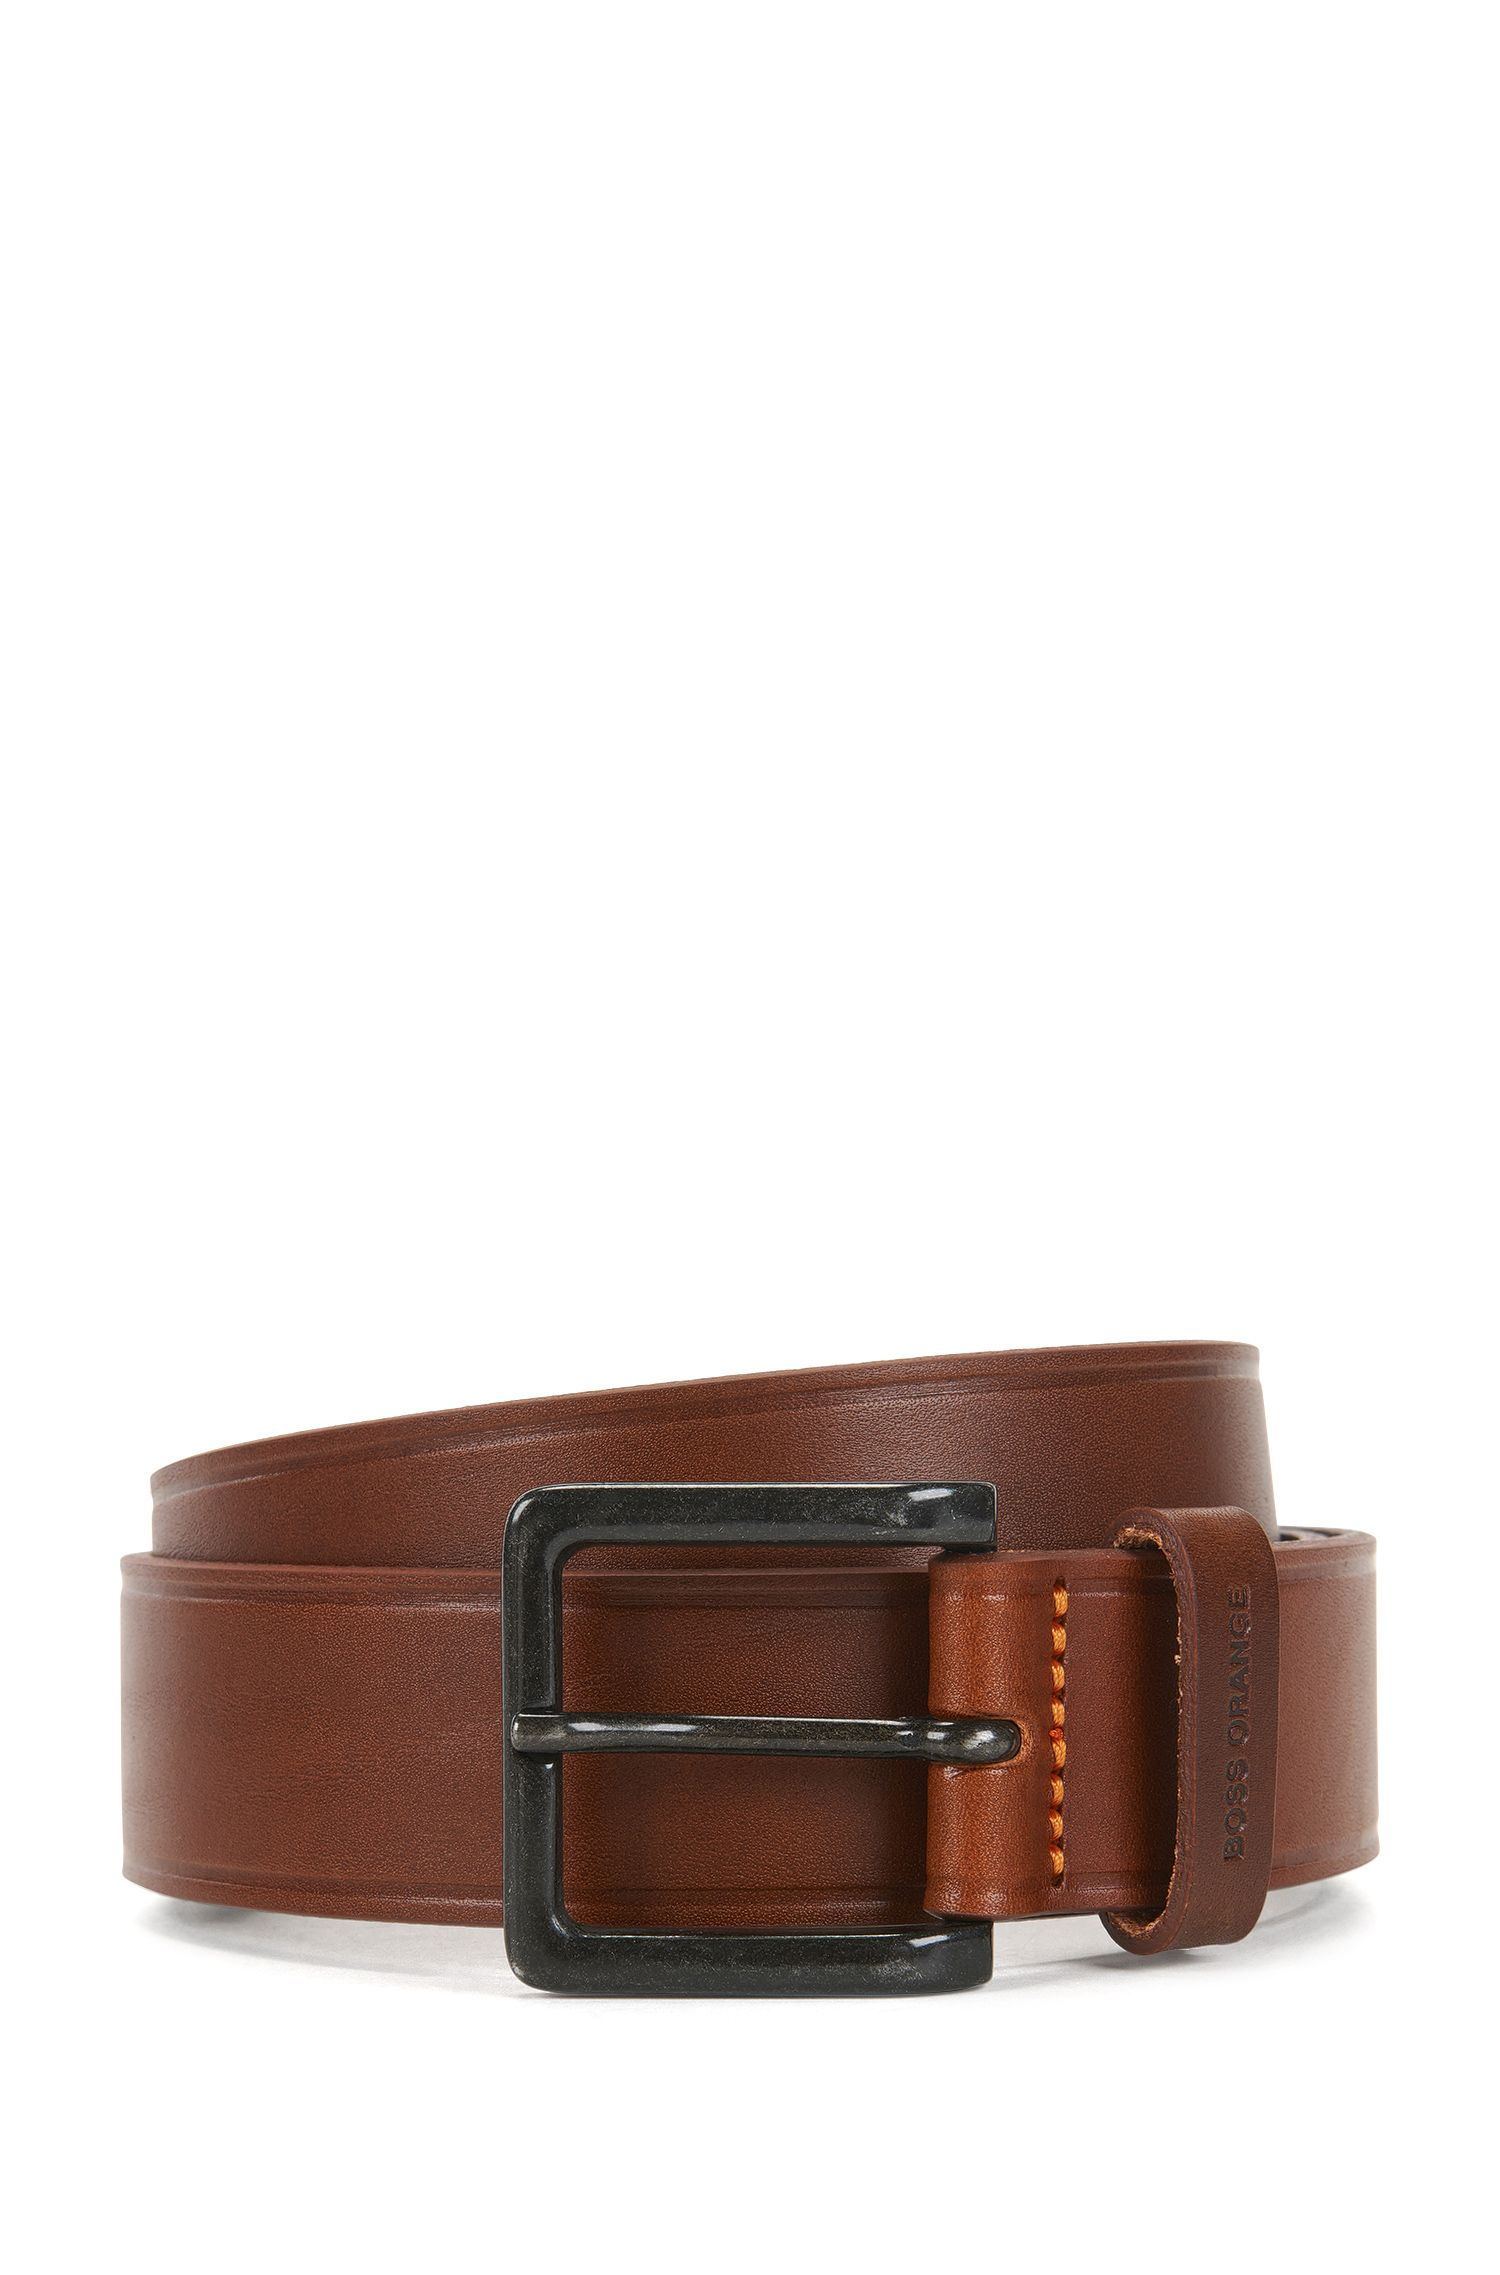 Leather Belt | Jordan Sz Ltpl